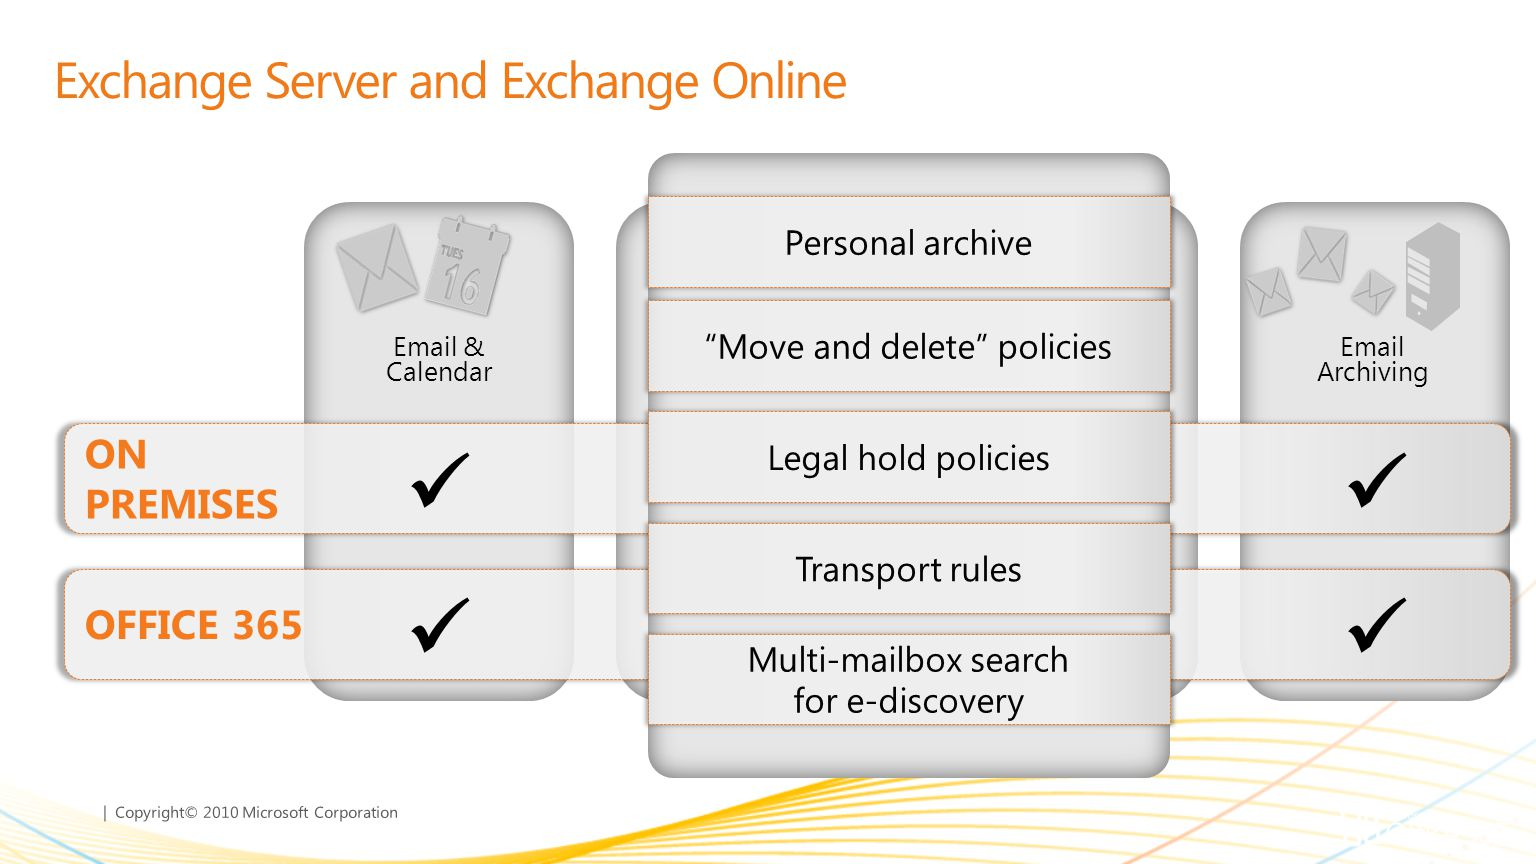 | Copyright© 2010 Microsoft Corporation Exchange Server and Exchange Online Mobile Collaboration Email & Calendar Voicemail in Your Inbox Email Archiving Personal archive Move and delete policies Legal hold policies Transport rules Multi-mailbox search for e-discovery